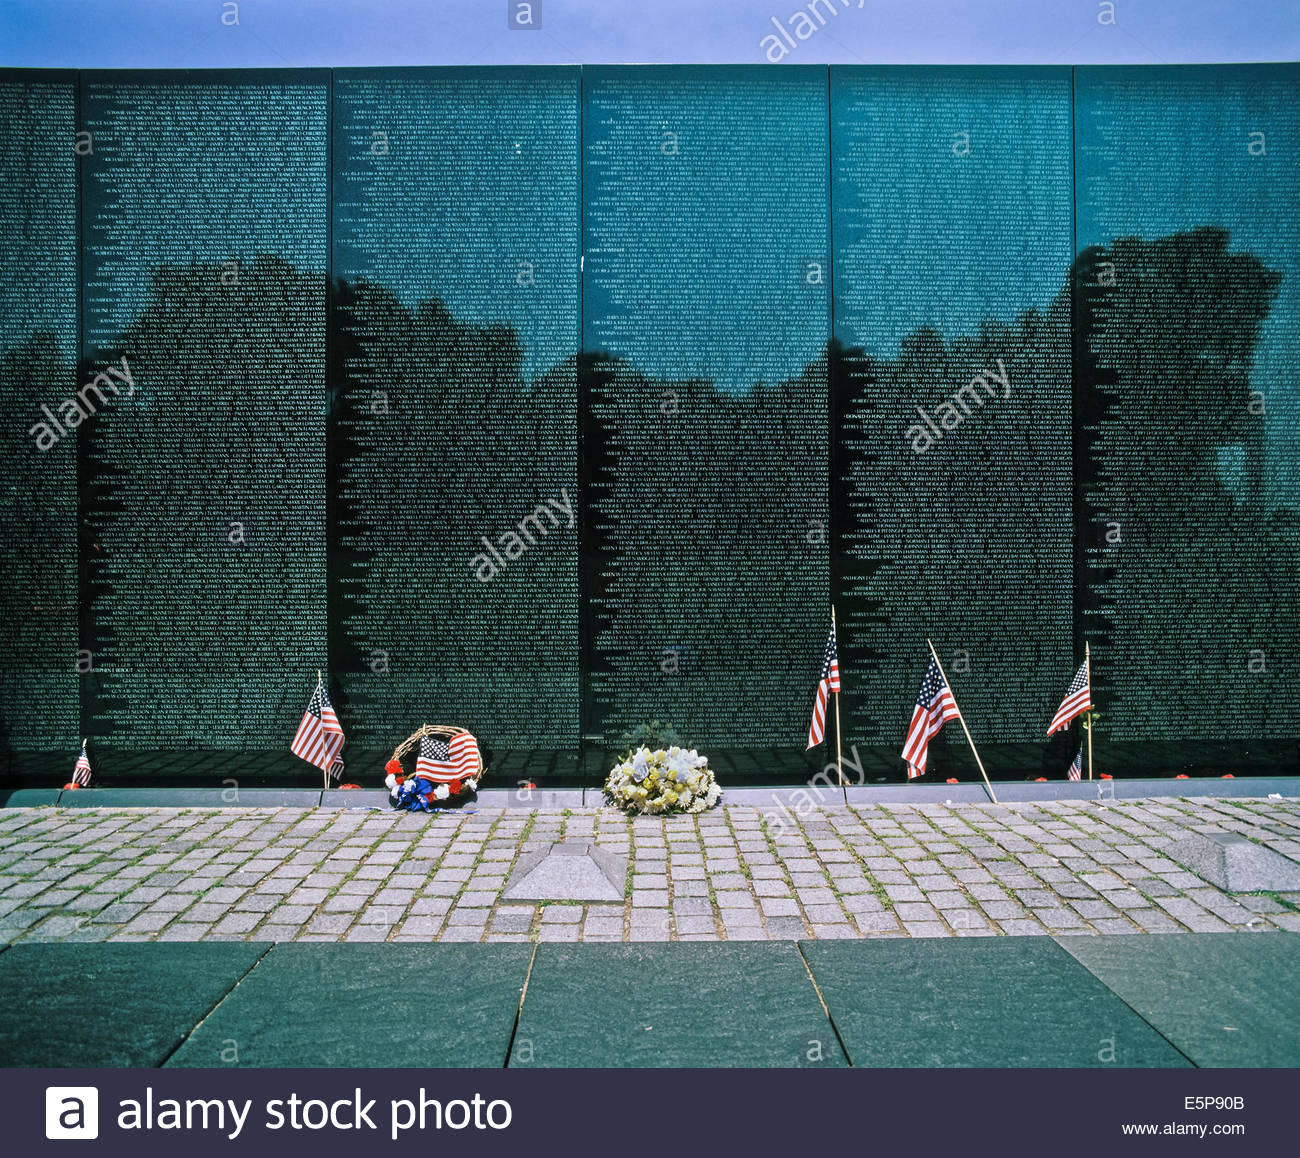 Names of war dead and missing in action etched on the Vietnam Veterans Memorial Wall in Washington DC USA - Stock Image